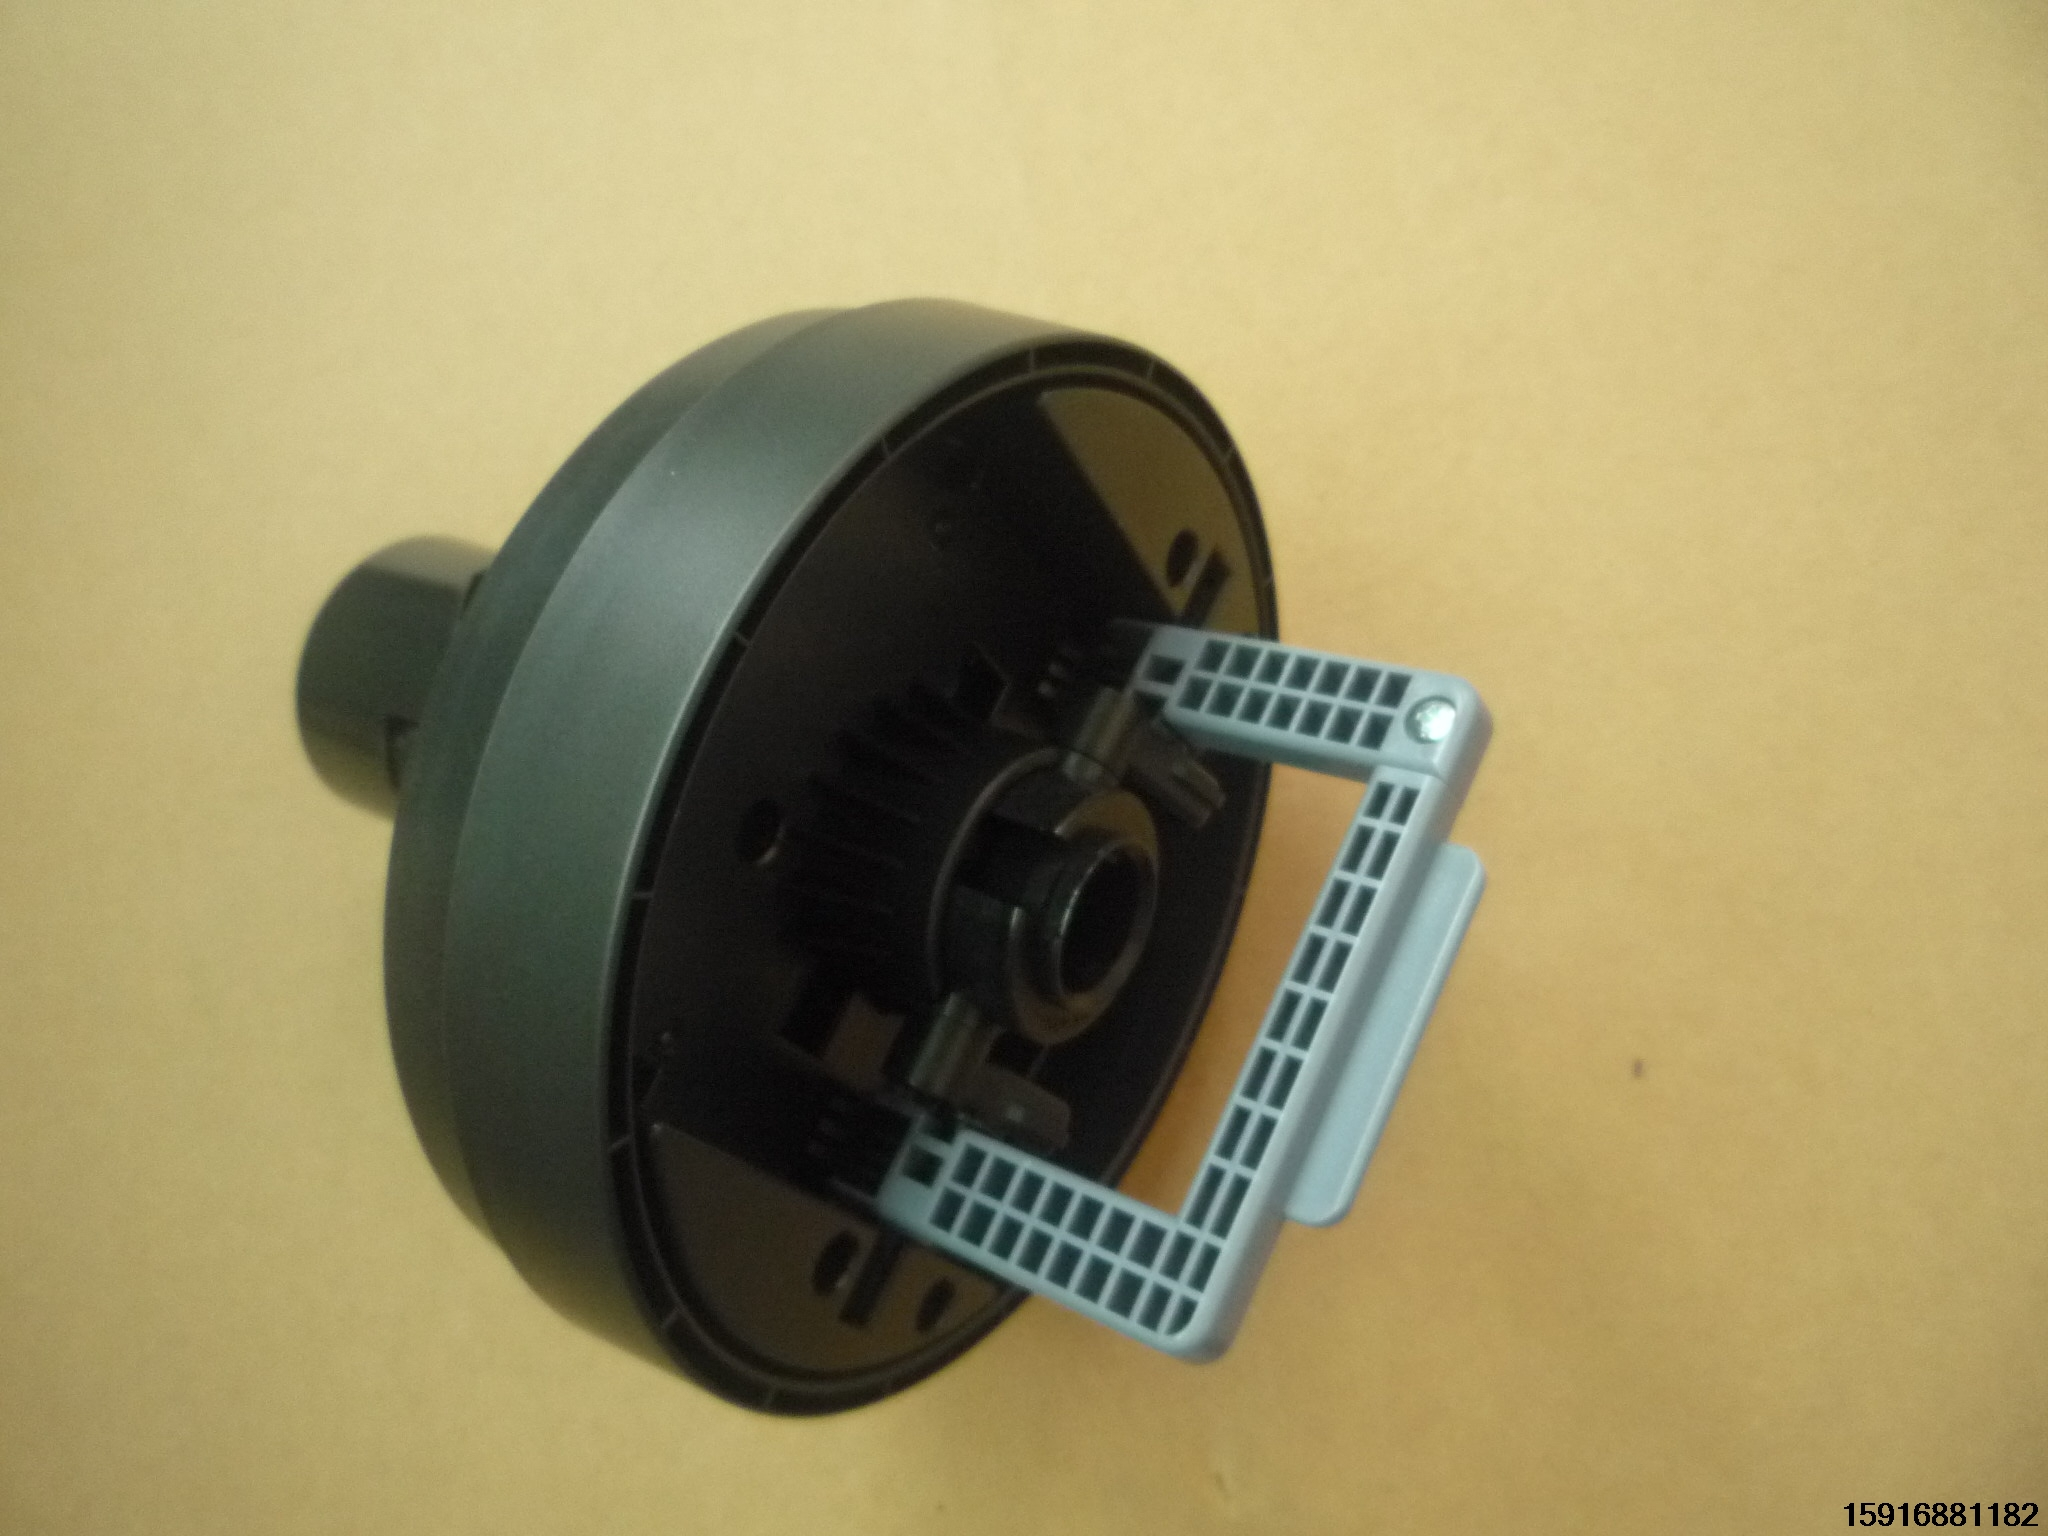 Free shipping 100 Original new ROLL ADAPTER FLANGE for Epson SC P7050 P9050 P6050 P8050